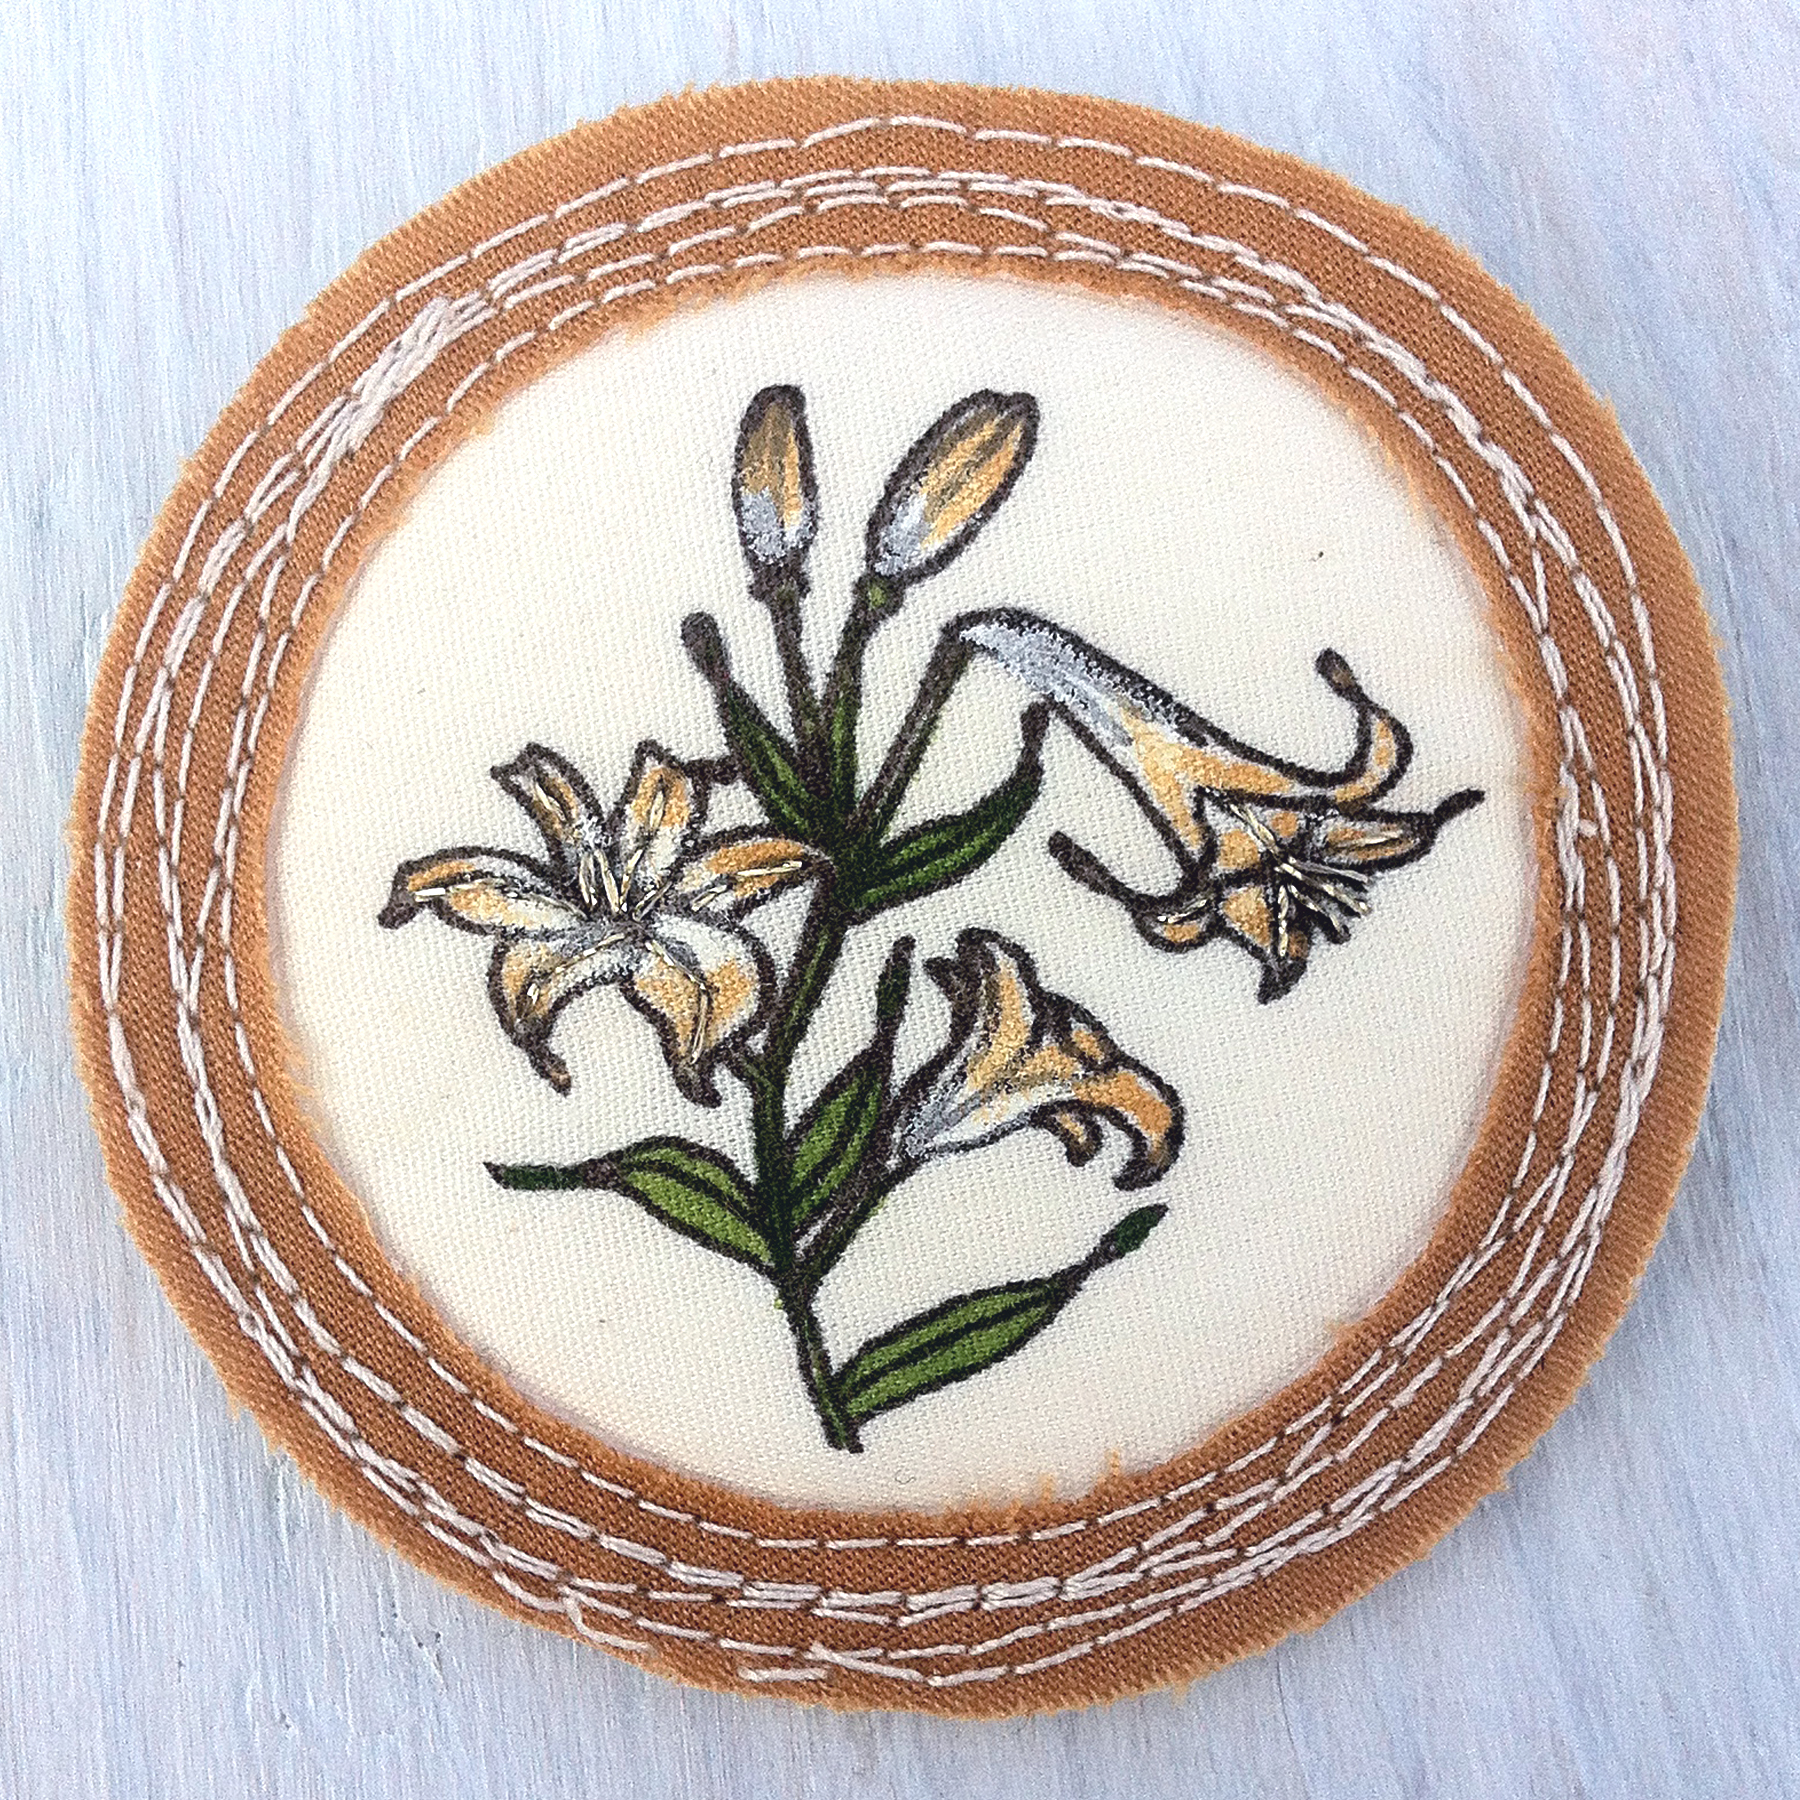 'Gilding the Lilies'.